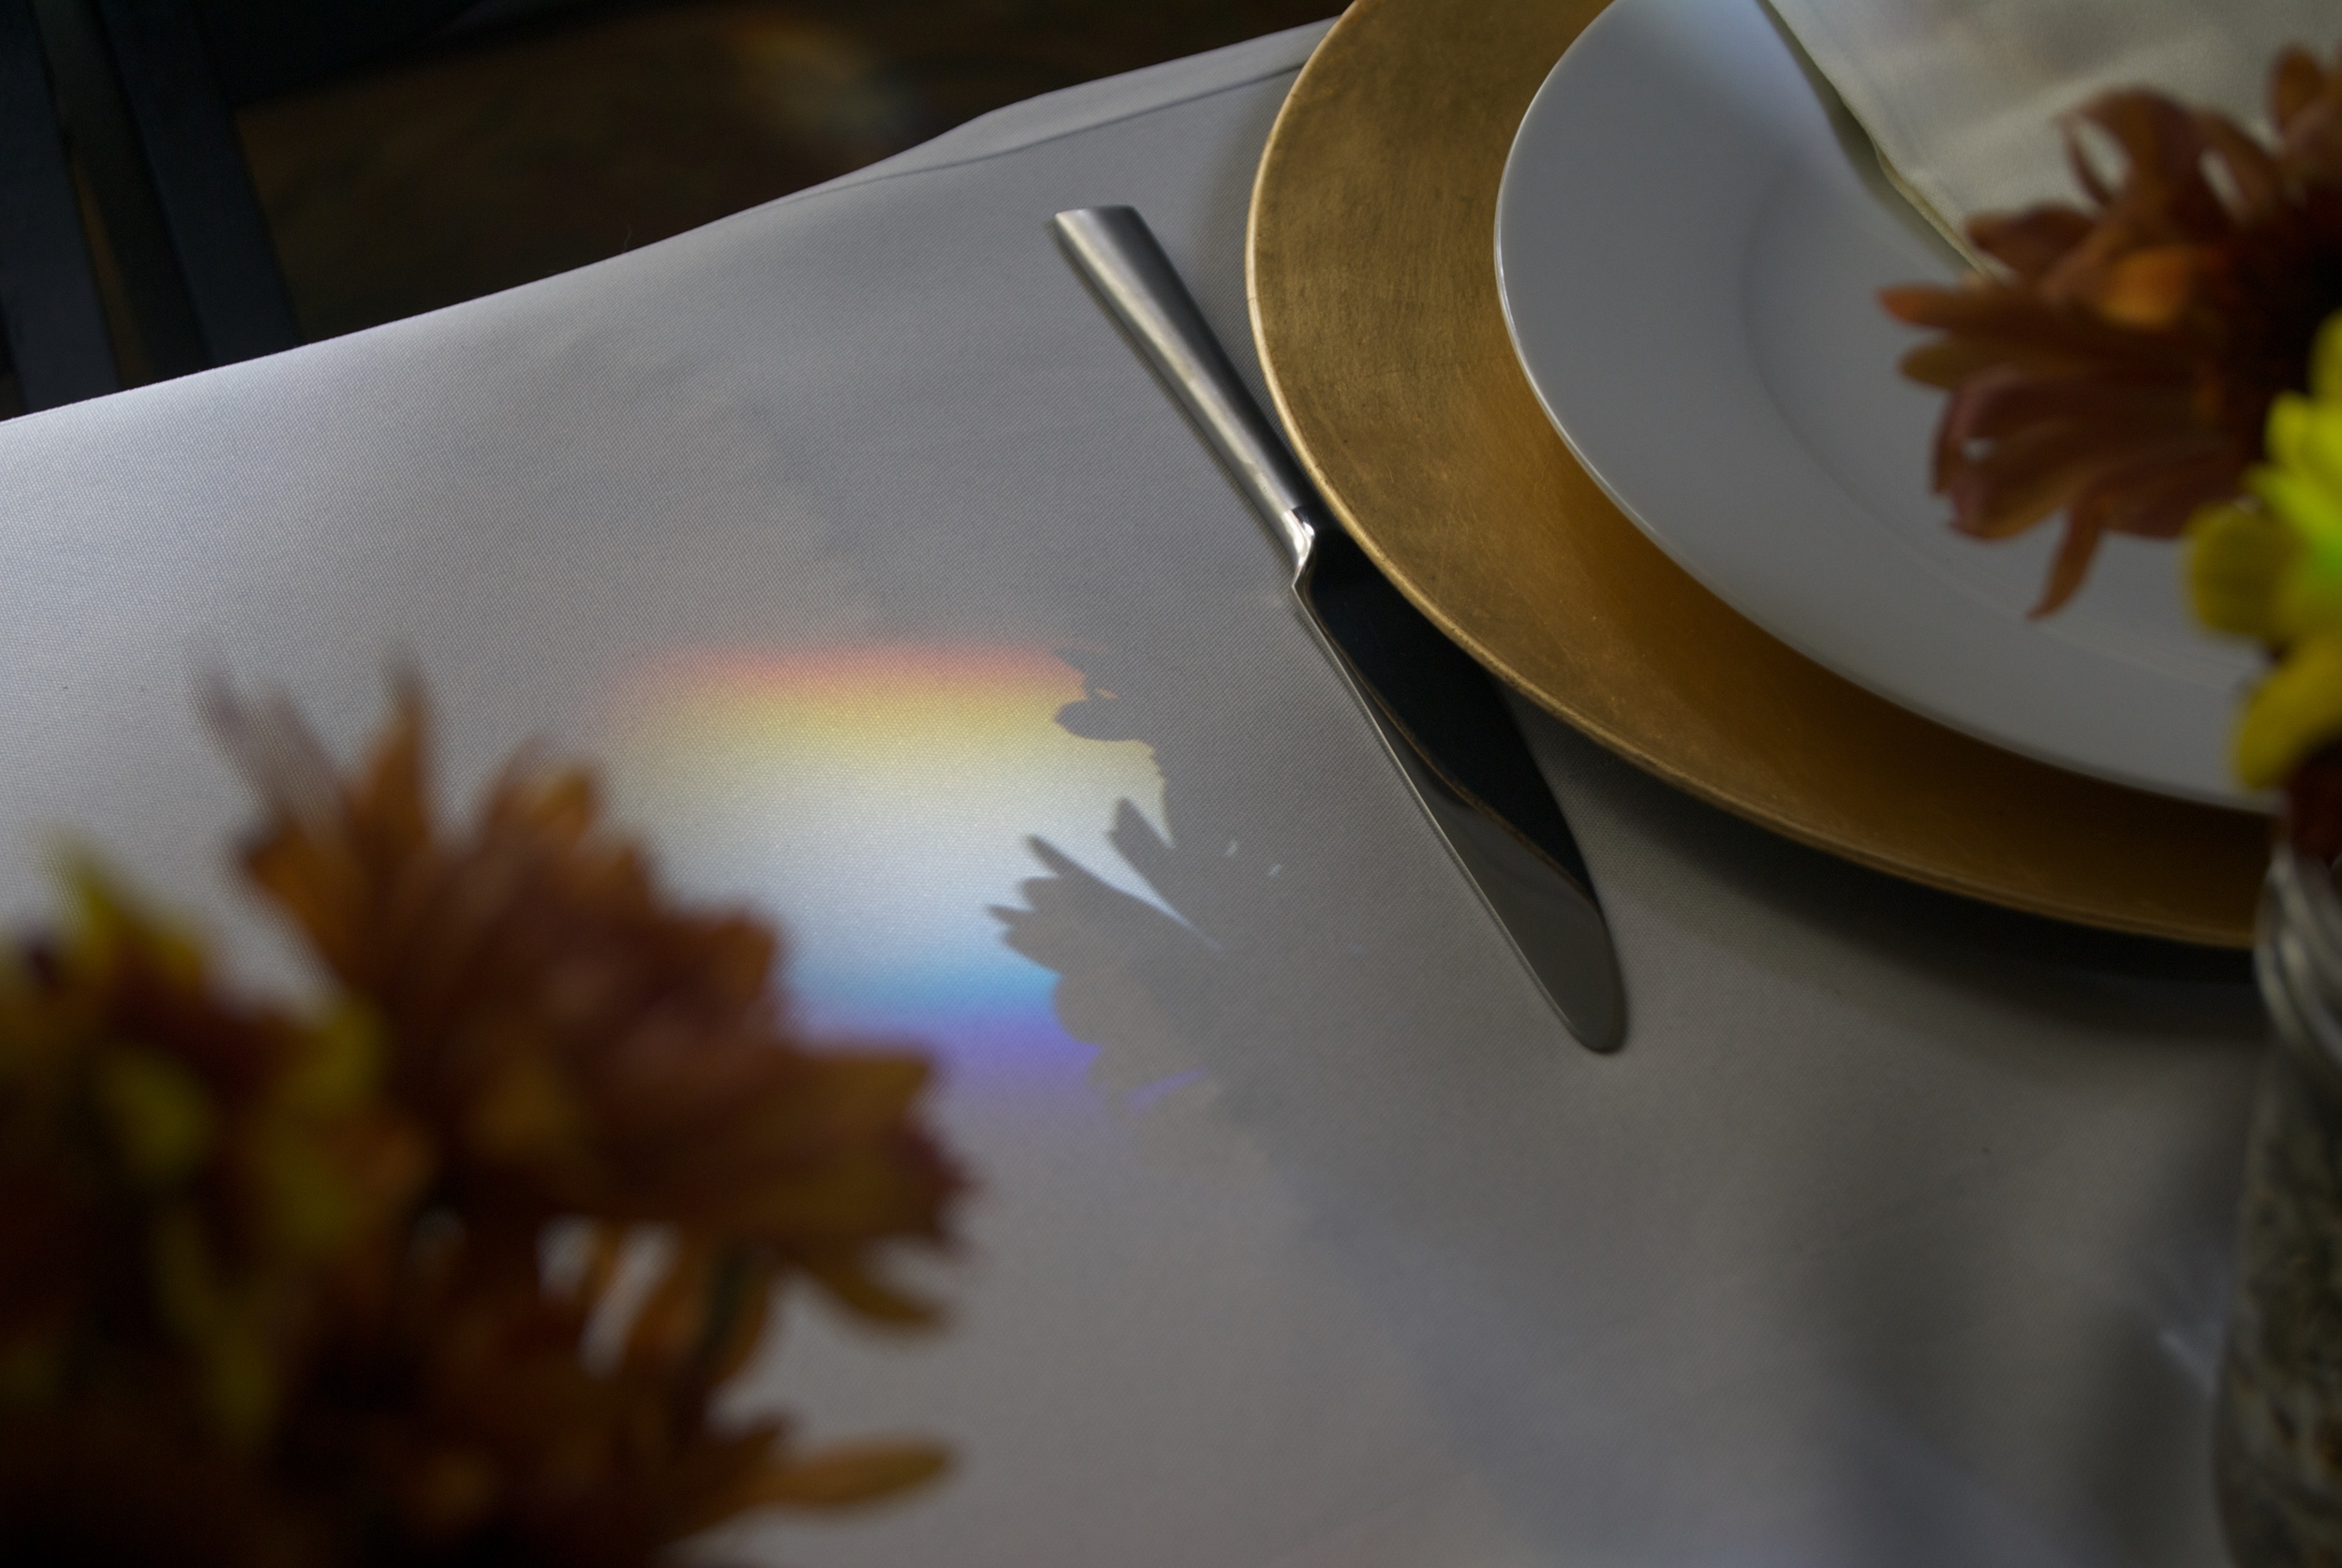 Rainbows on the dinner table